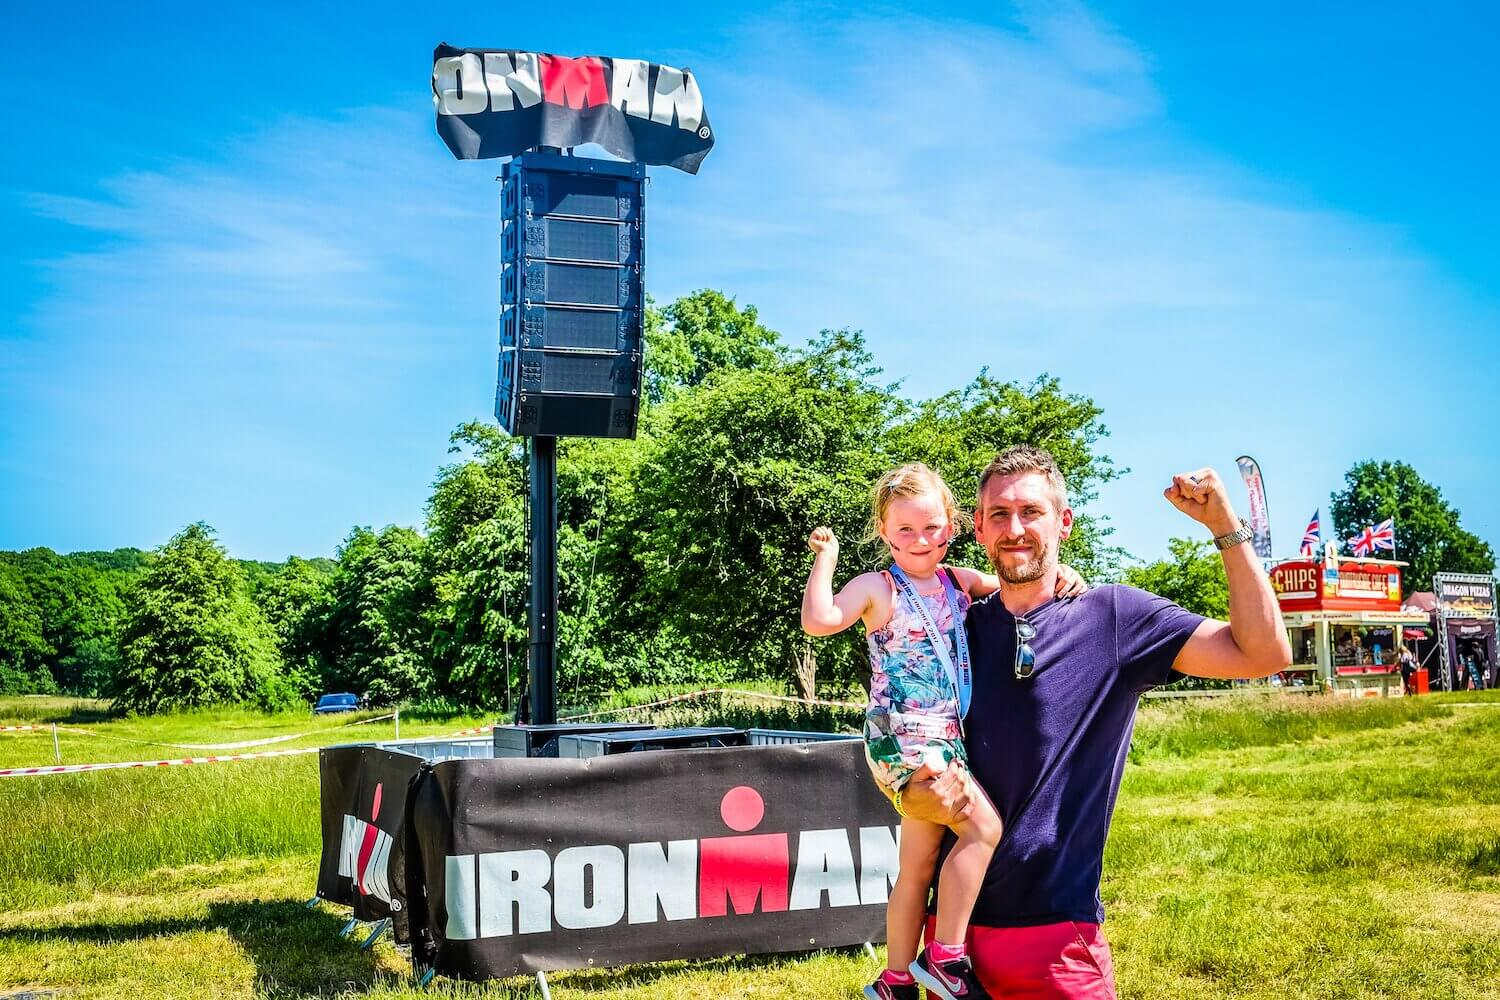 IRONKIDS Staffordshire - johnhibbs.me